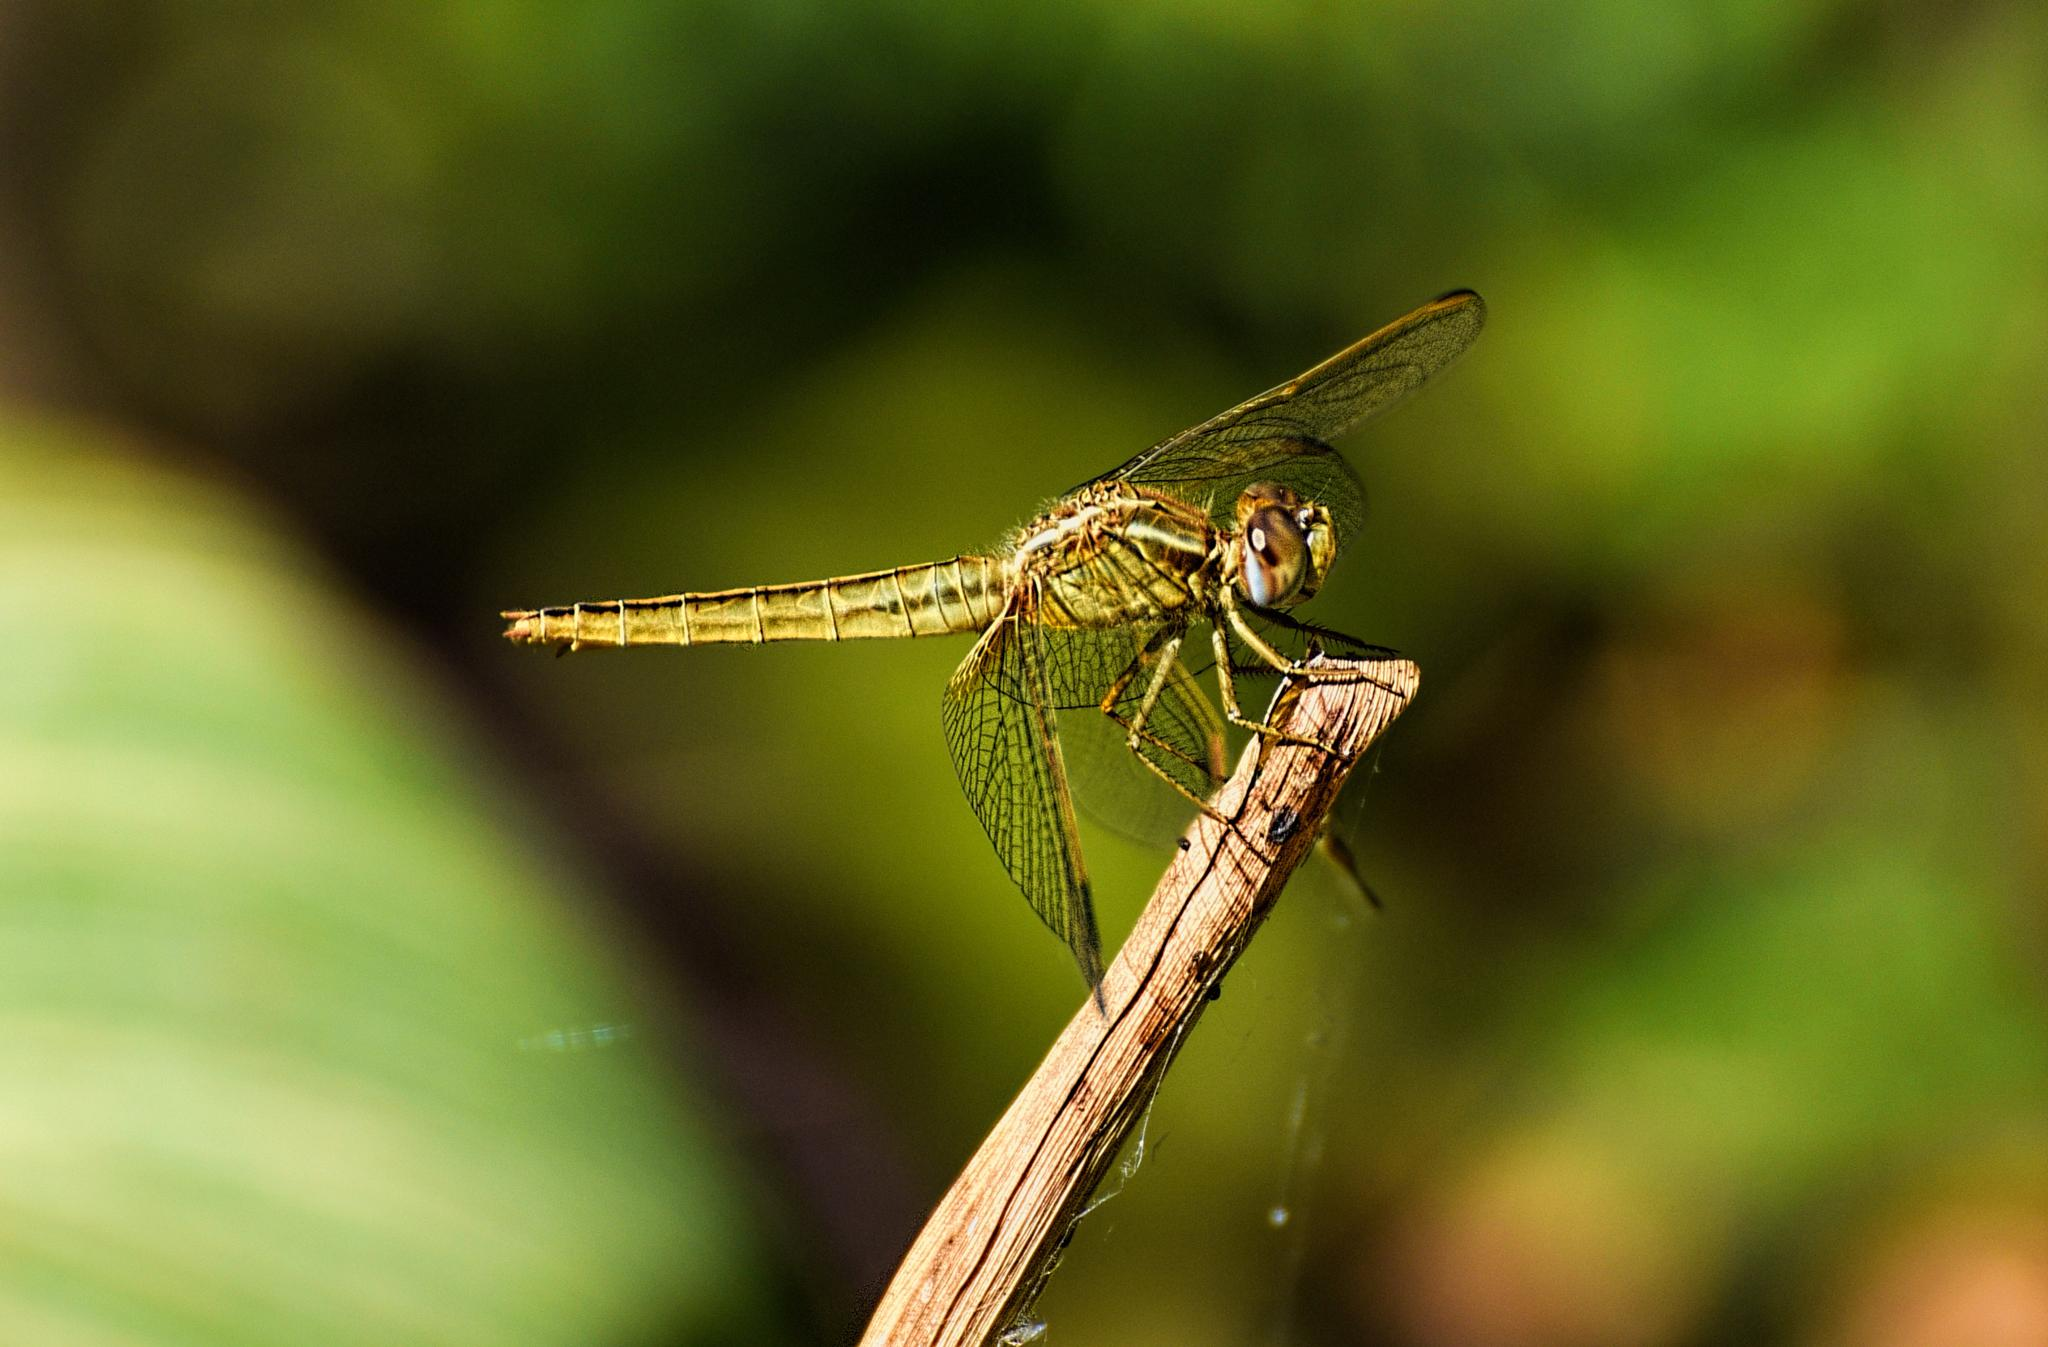 Dragonfly by Zoulficar